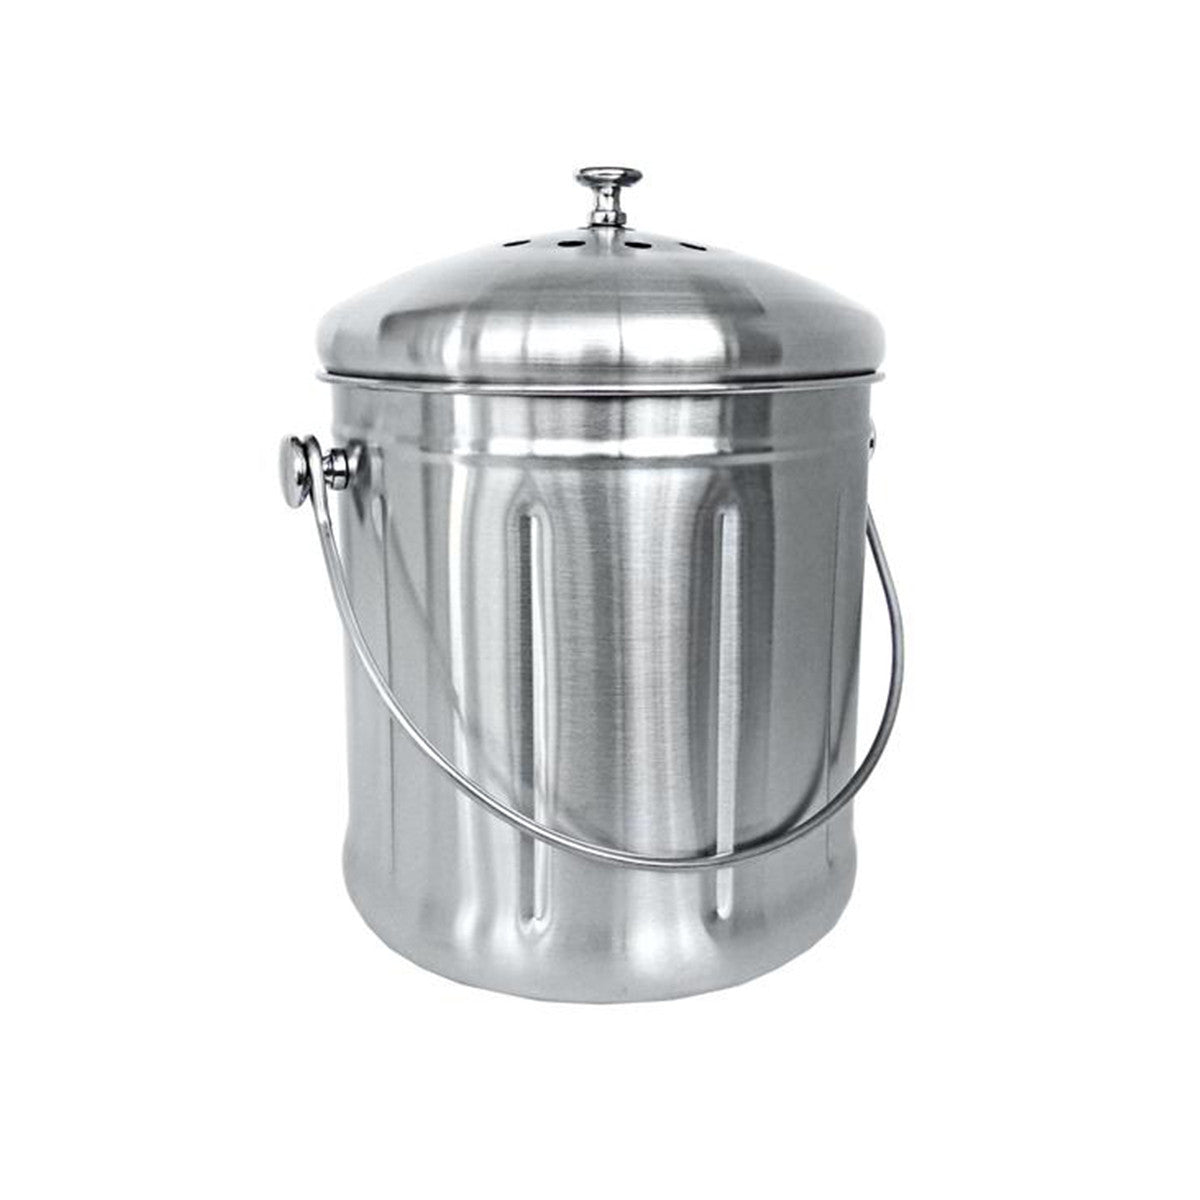 ... Stainless Steel Kitchen Compost Bin U2013 1.8 Gallon